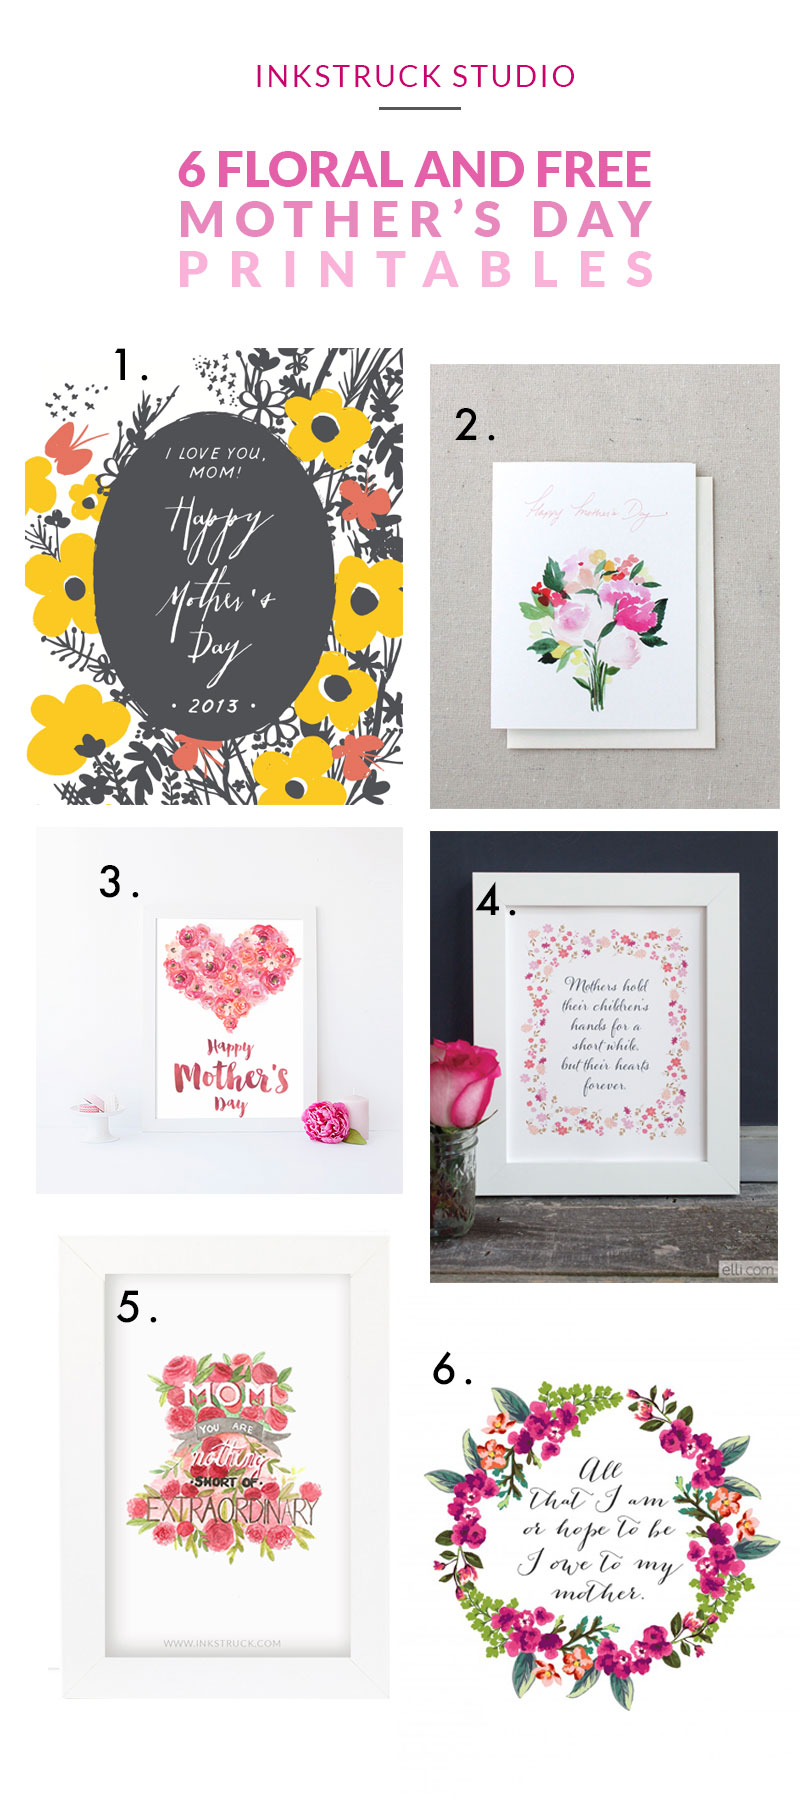 Six floral and free mother's day printables | Inkstruck Studio